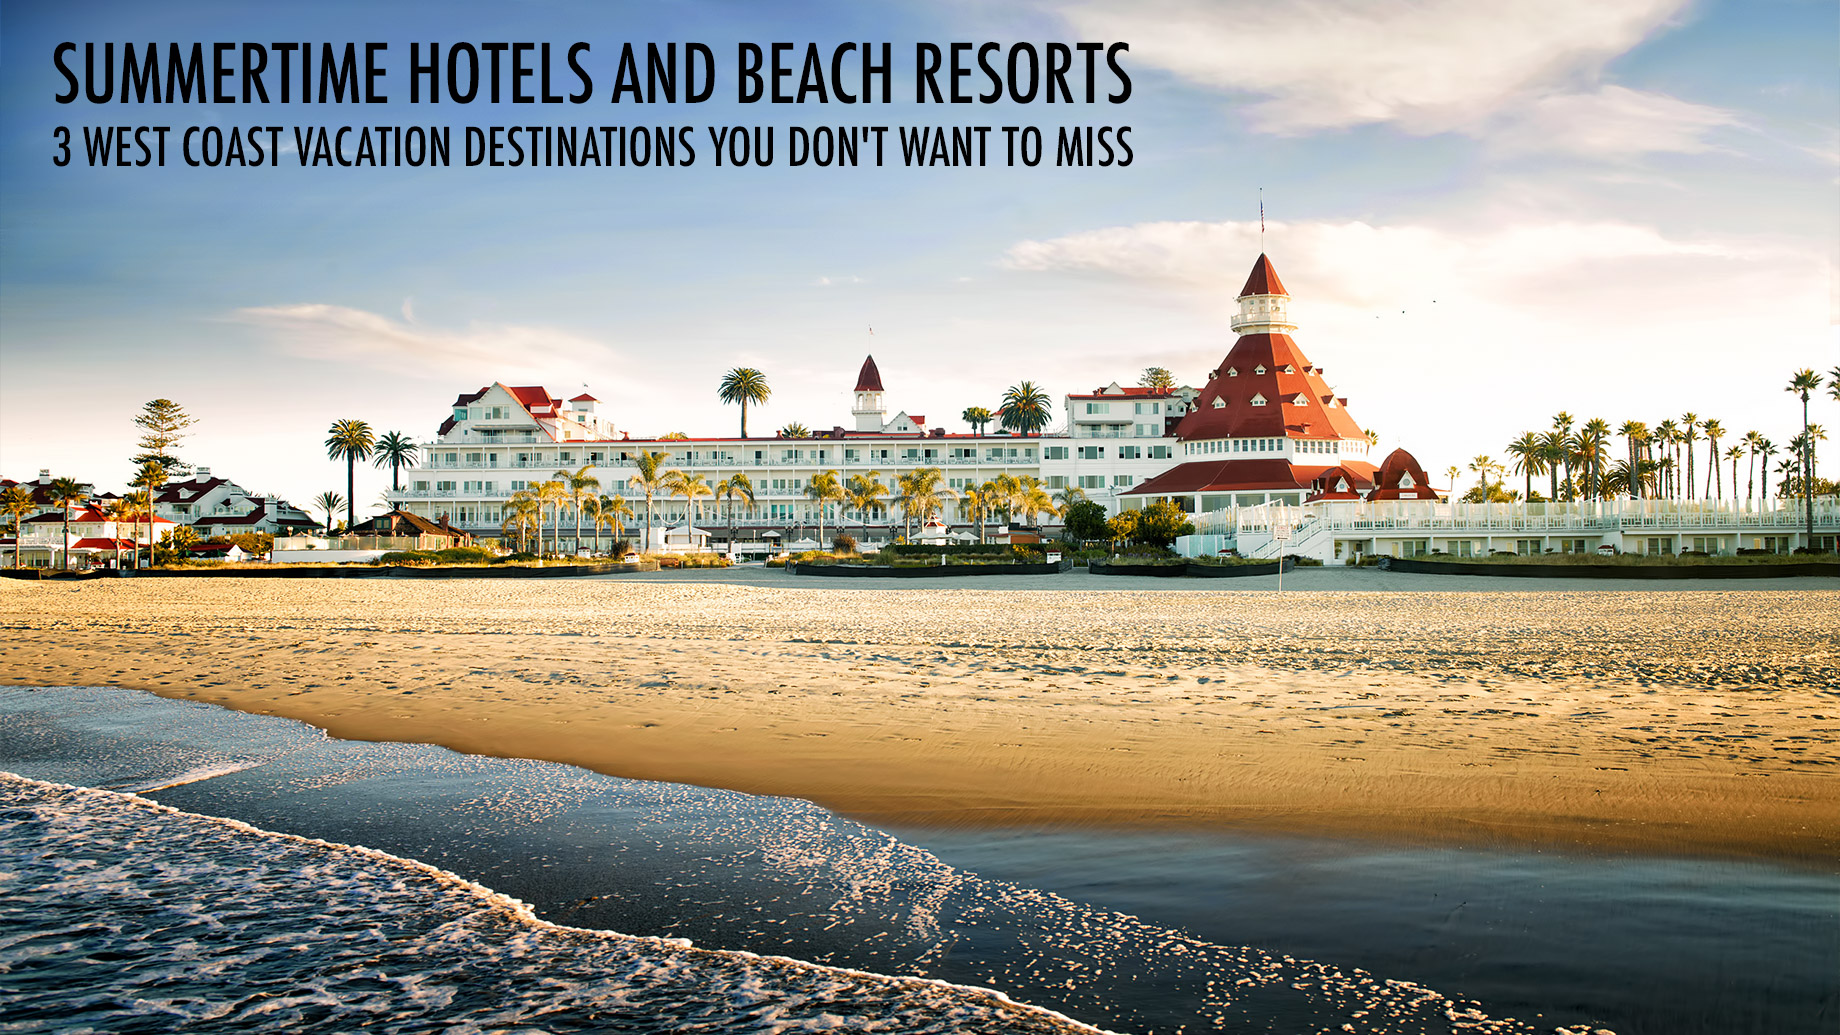 Summertime Hotels and Beach Resorts – 3 West Coast Vacation Destinations You Don't Want to Miss